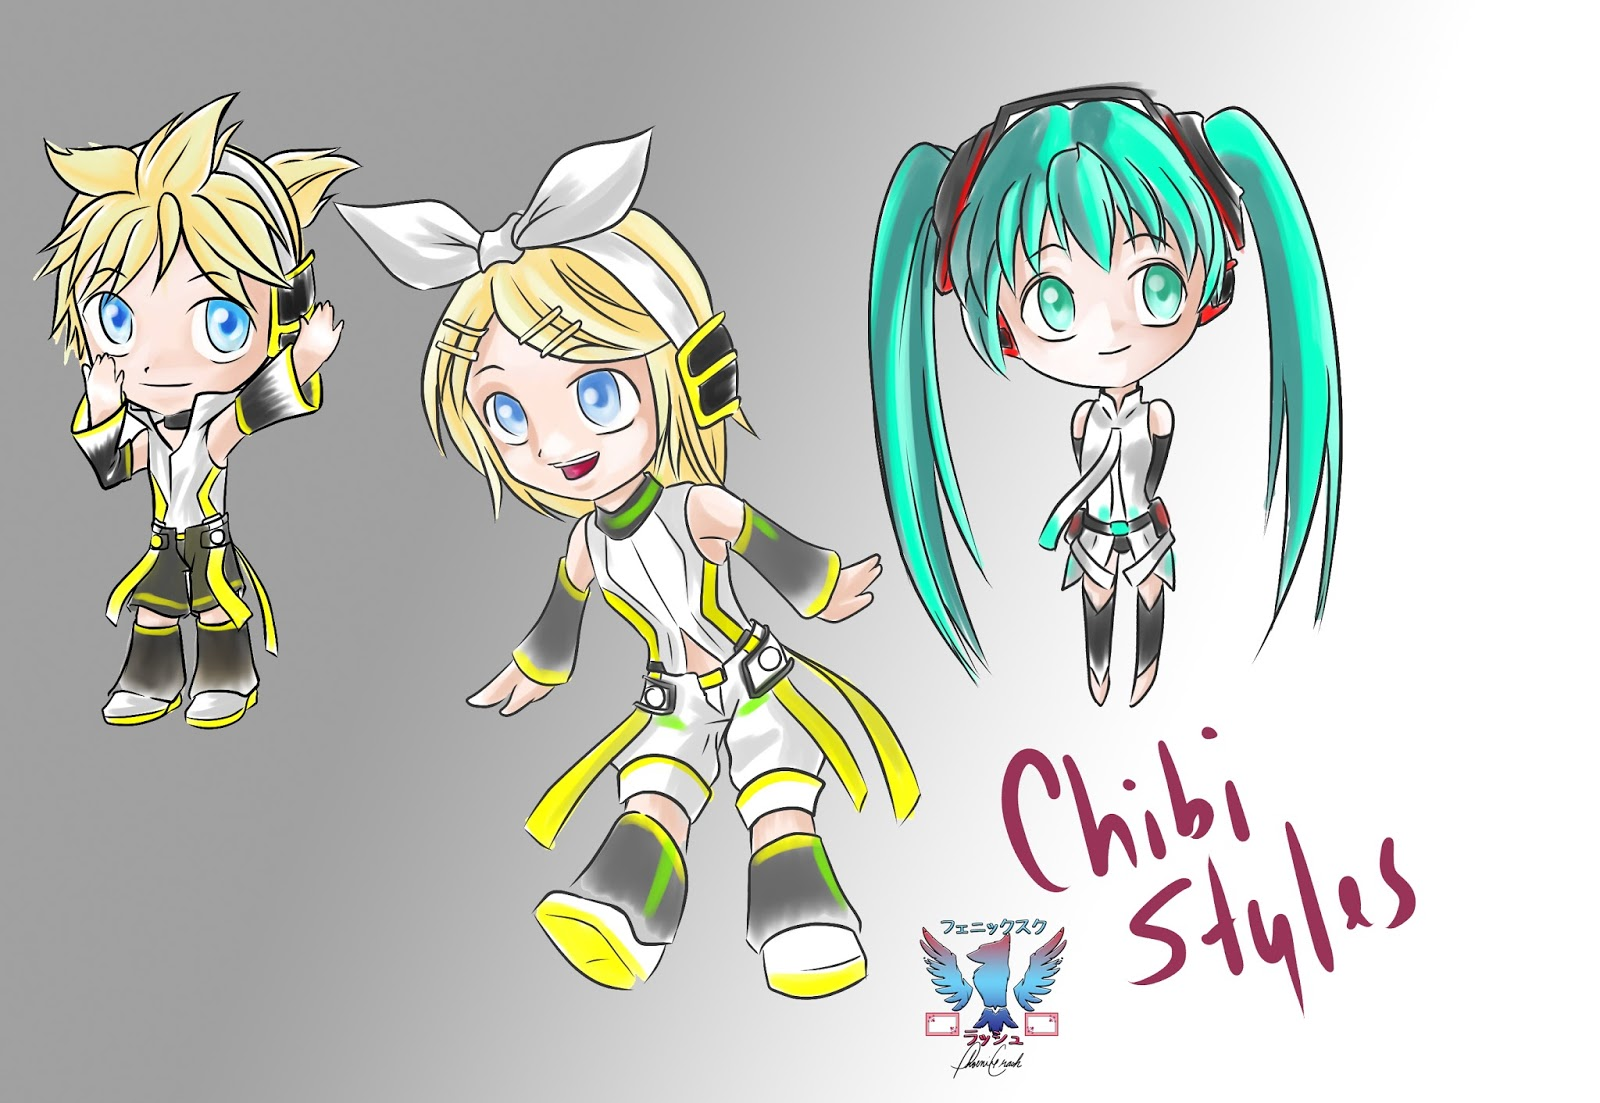 It's just a photo of Adorable Chibi Style Drawing